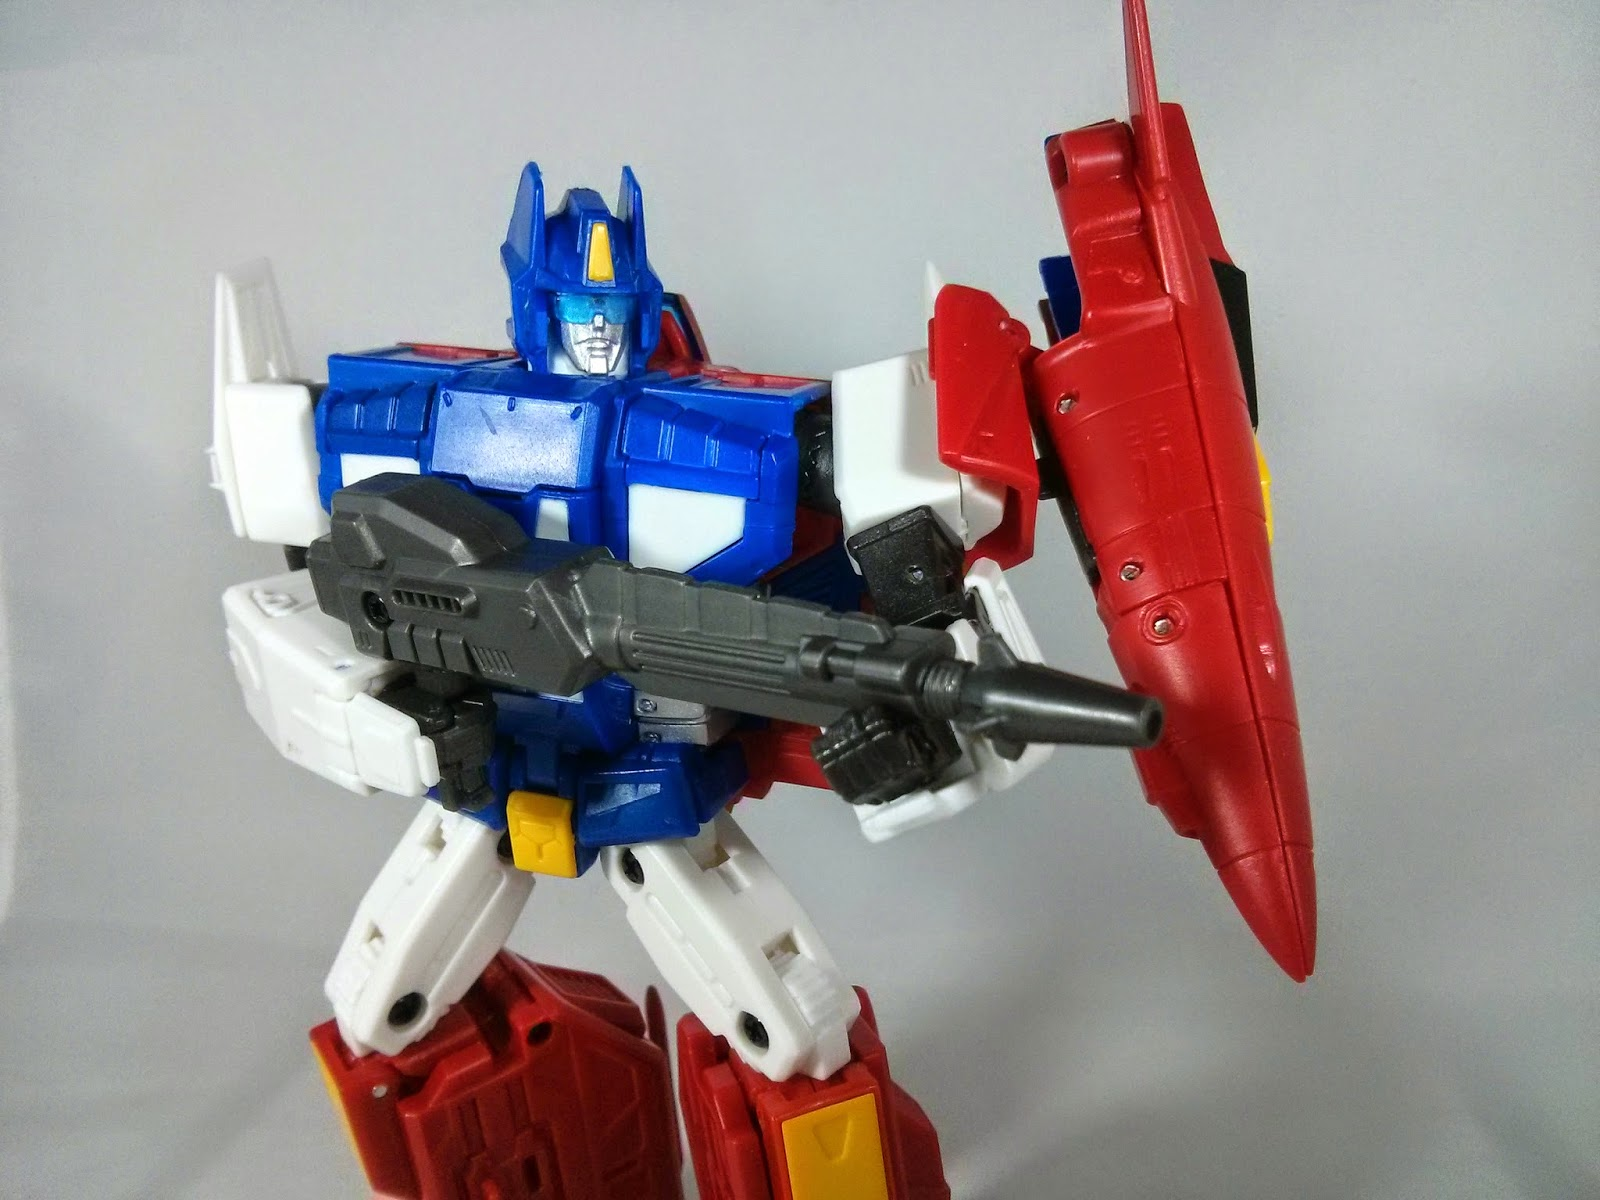 Transformers MP-24 Masterpiece Star Saber gun